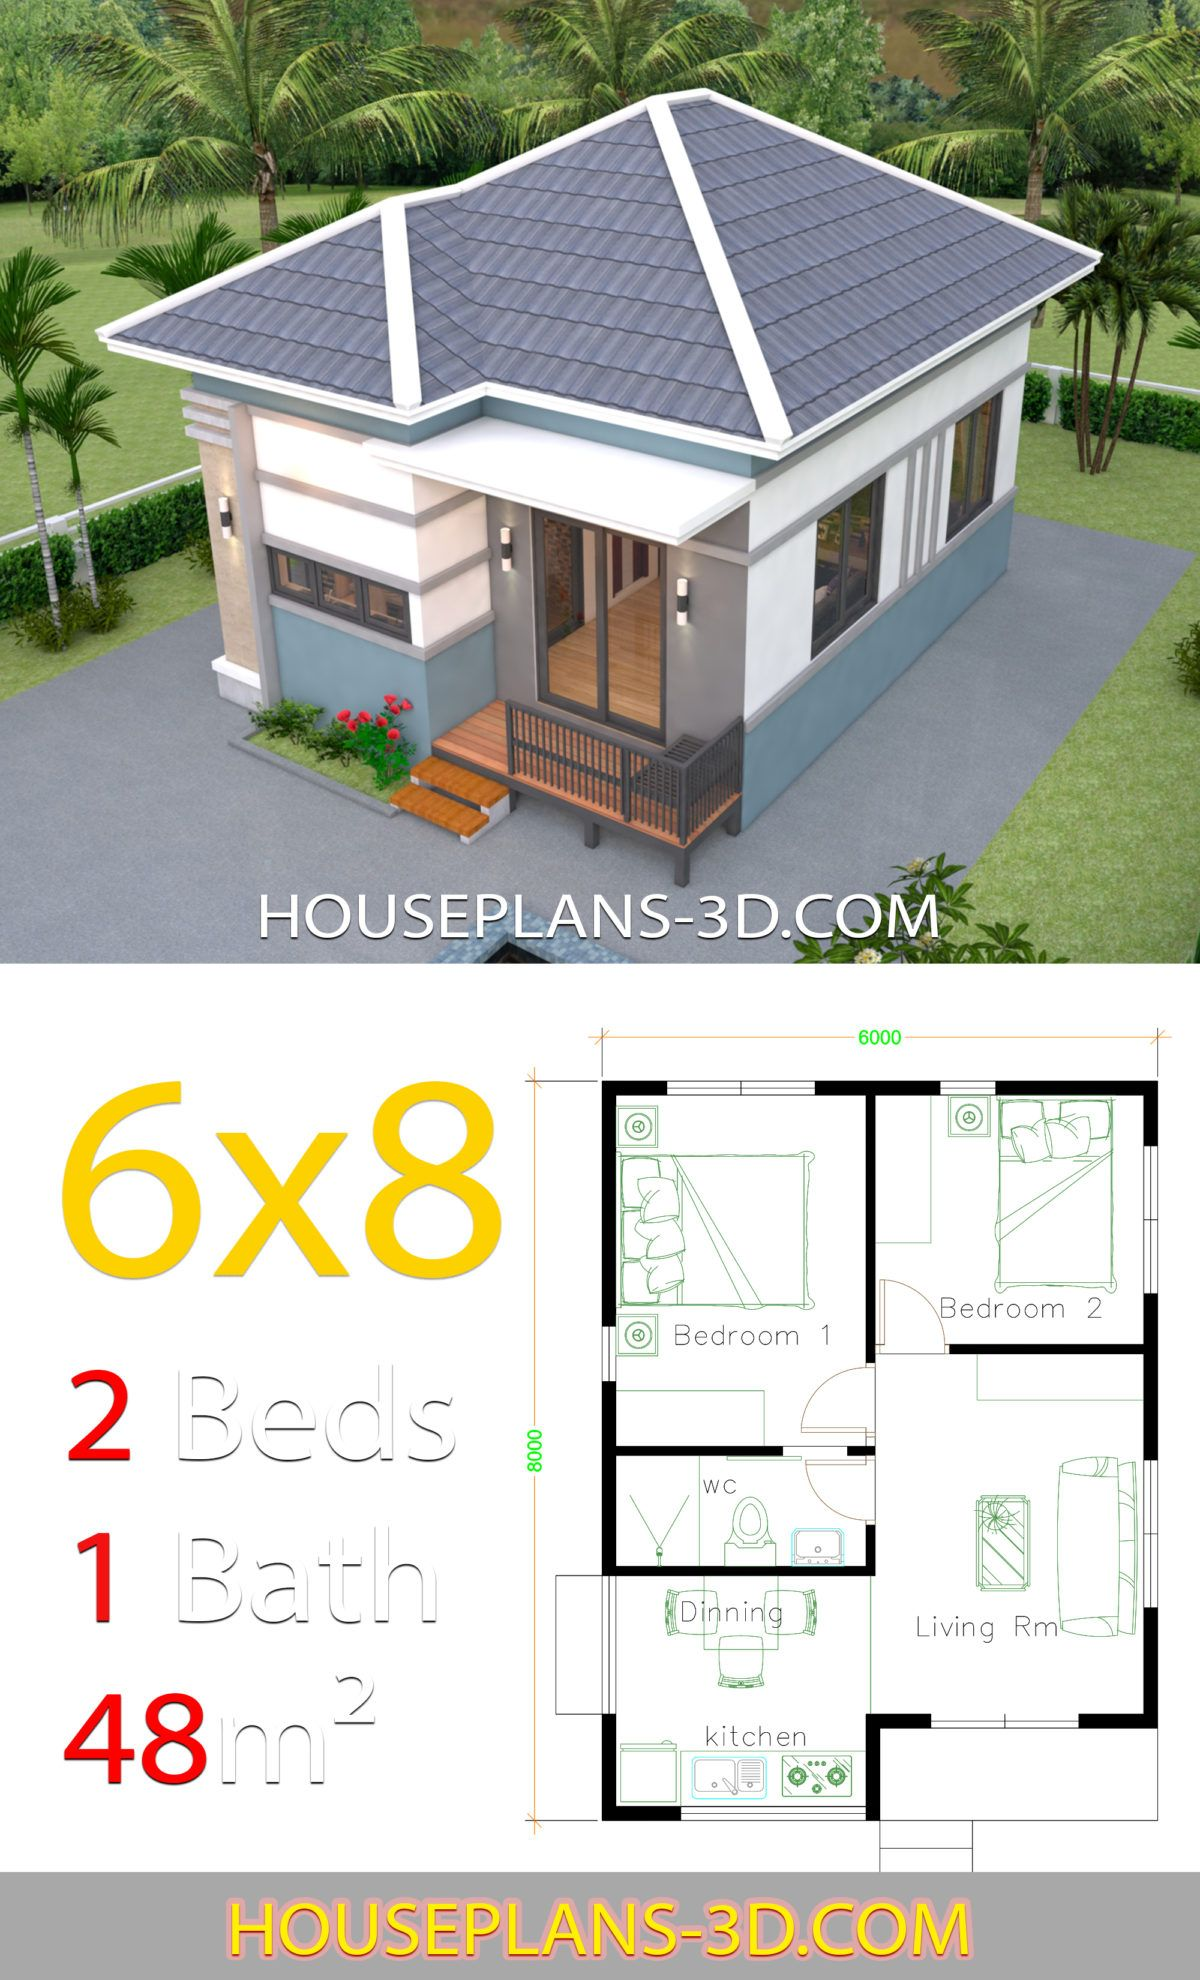 House Design 6x8 With 2 Bedrooms Hip Roof House Plans 3d Simple House Plans House Plans Simple House Design